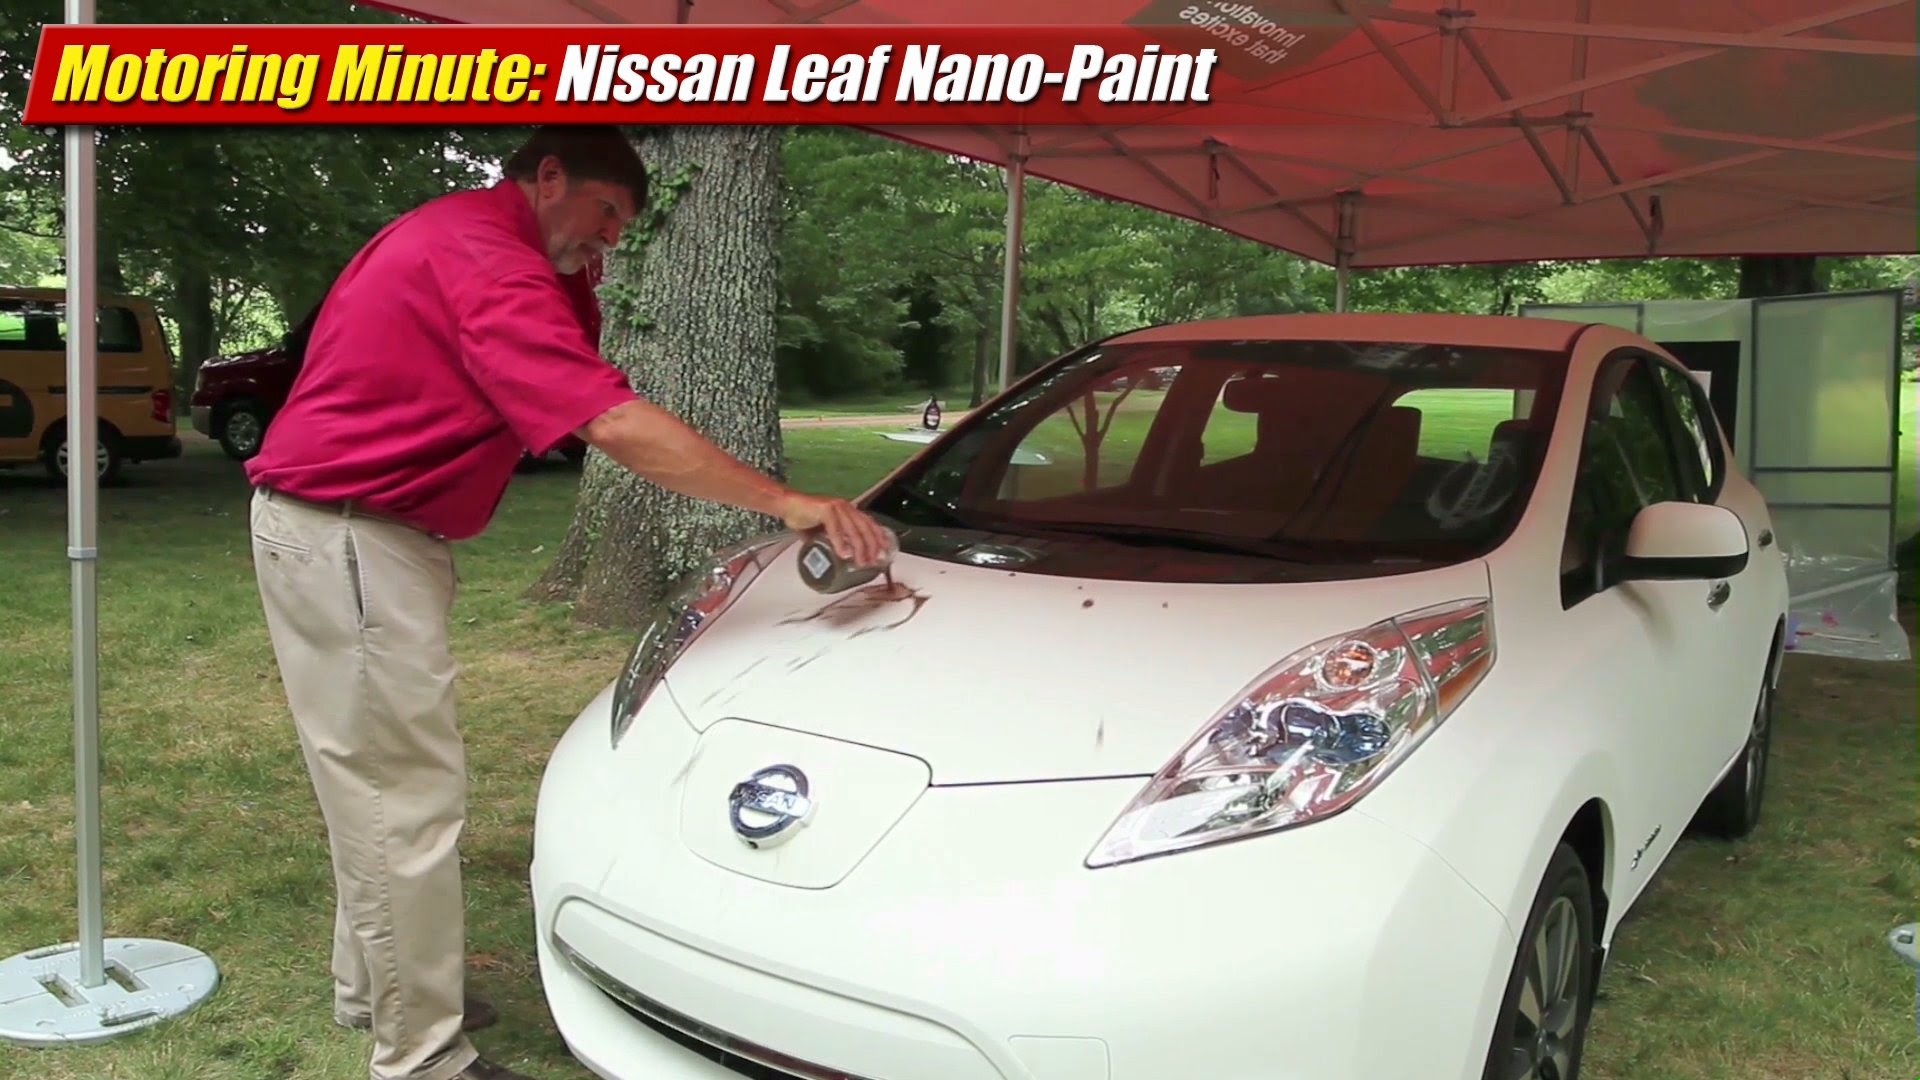 Motoring Minute: Nissan Leaf Nano Paint